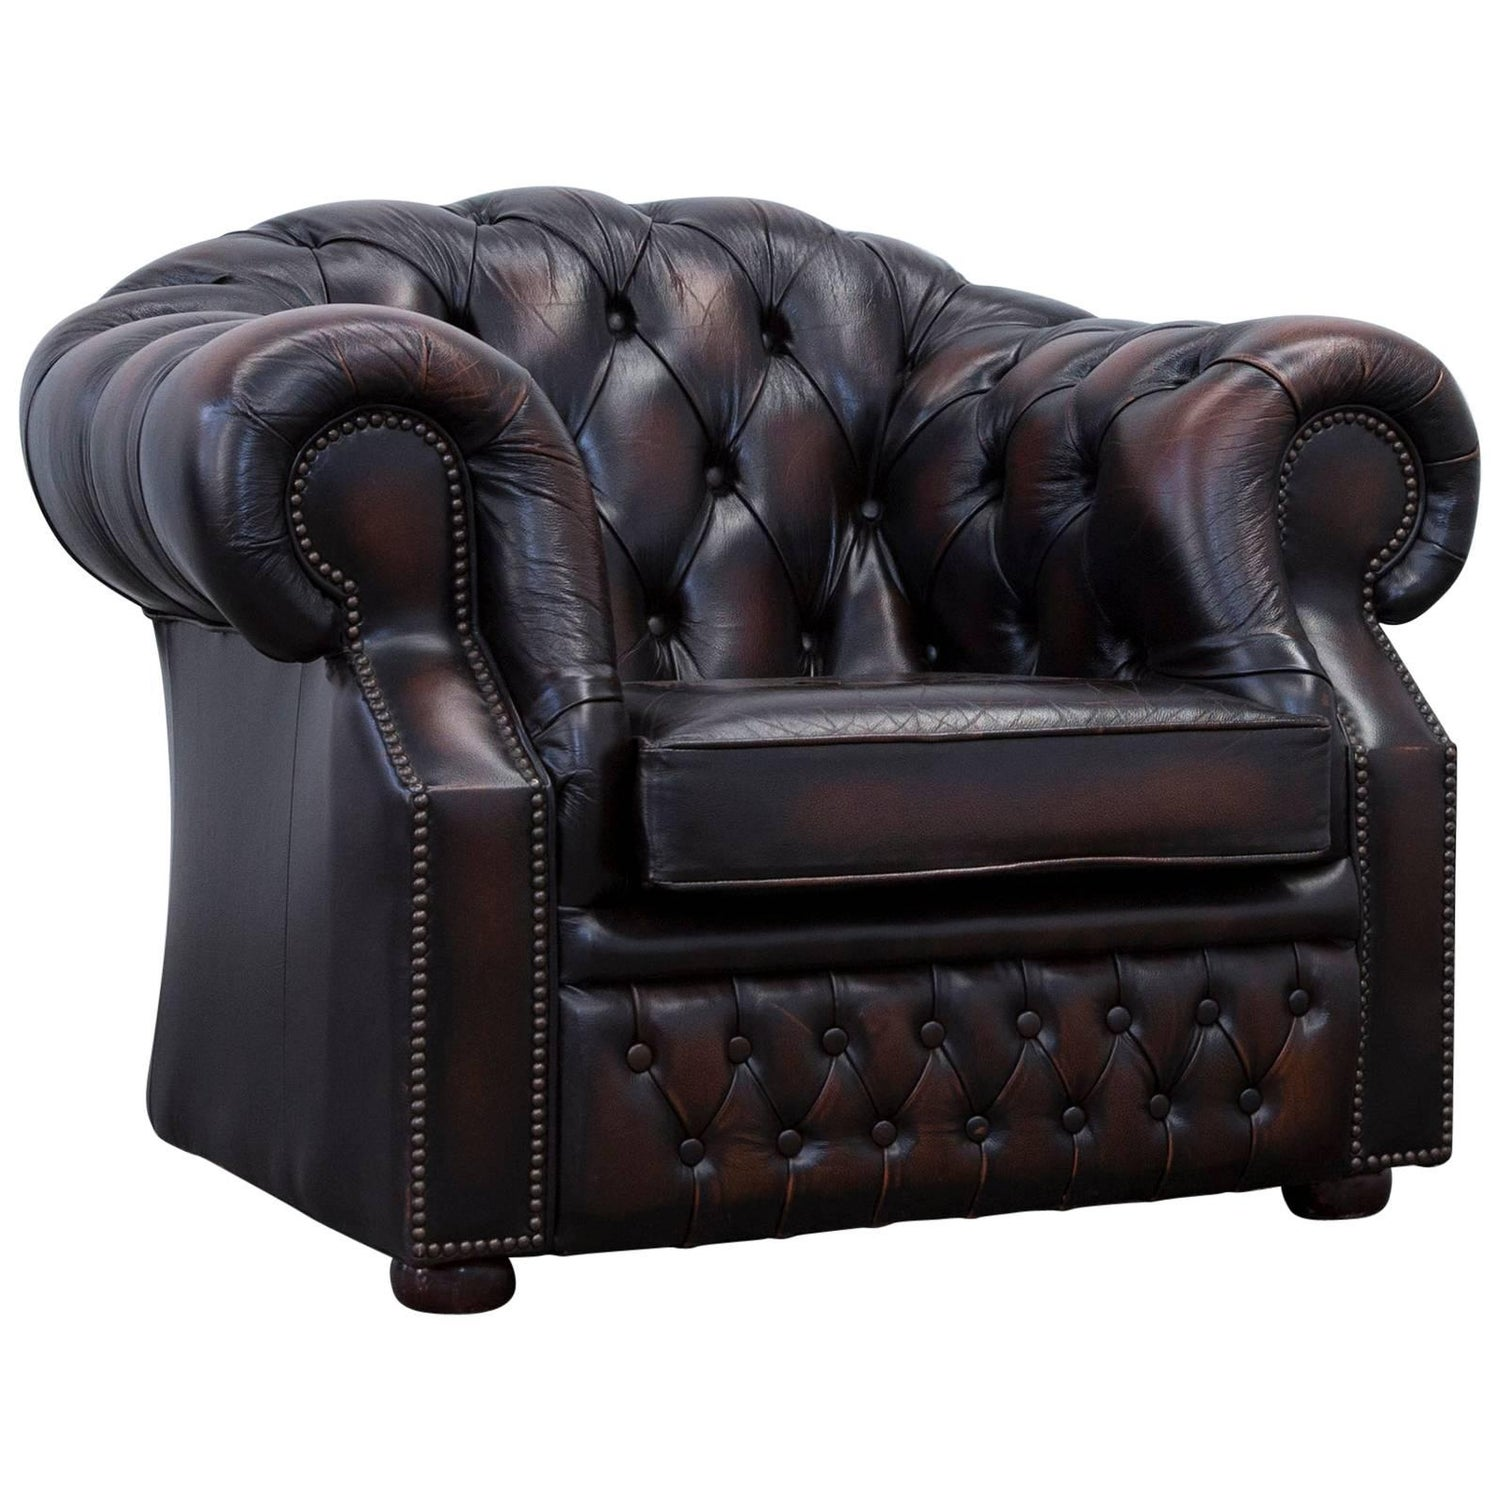 White chesterfield chair - Chesterfield Armchair Leather Brown One Seat Couch Vintage Retro